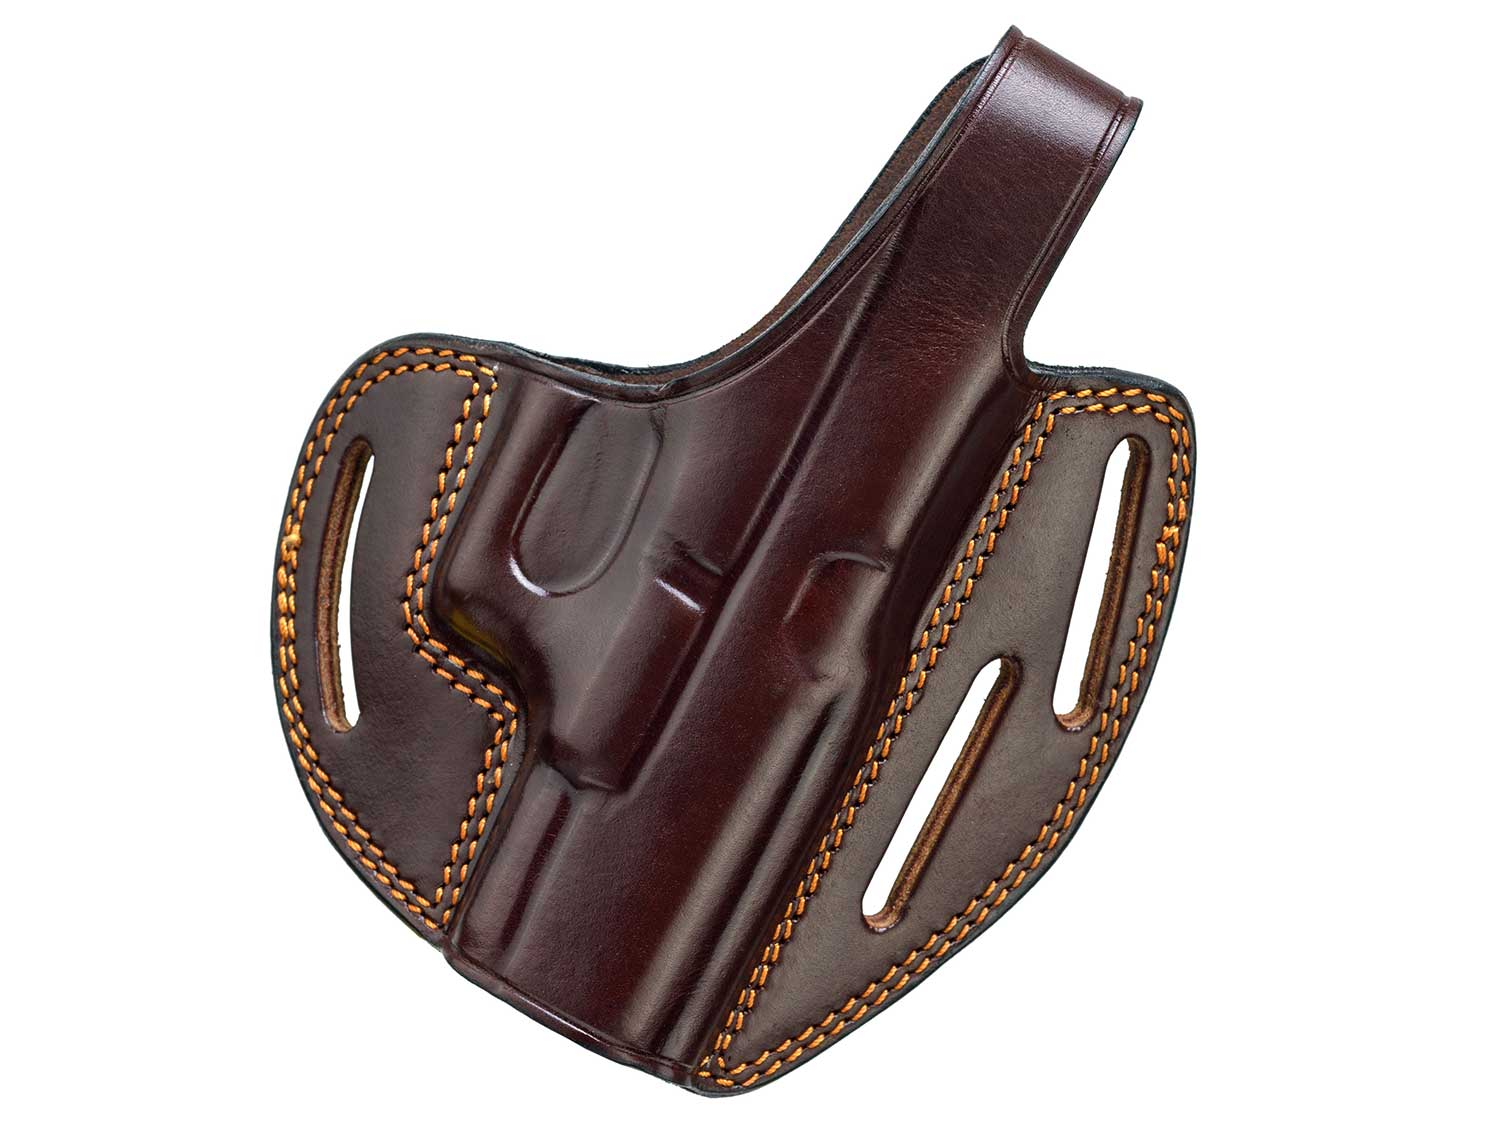 TB Casual gen 2 Three Slot Leather holster